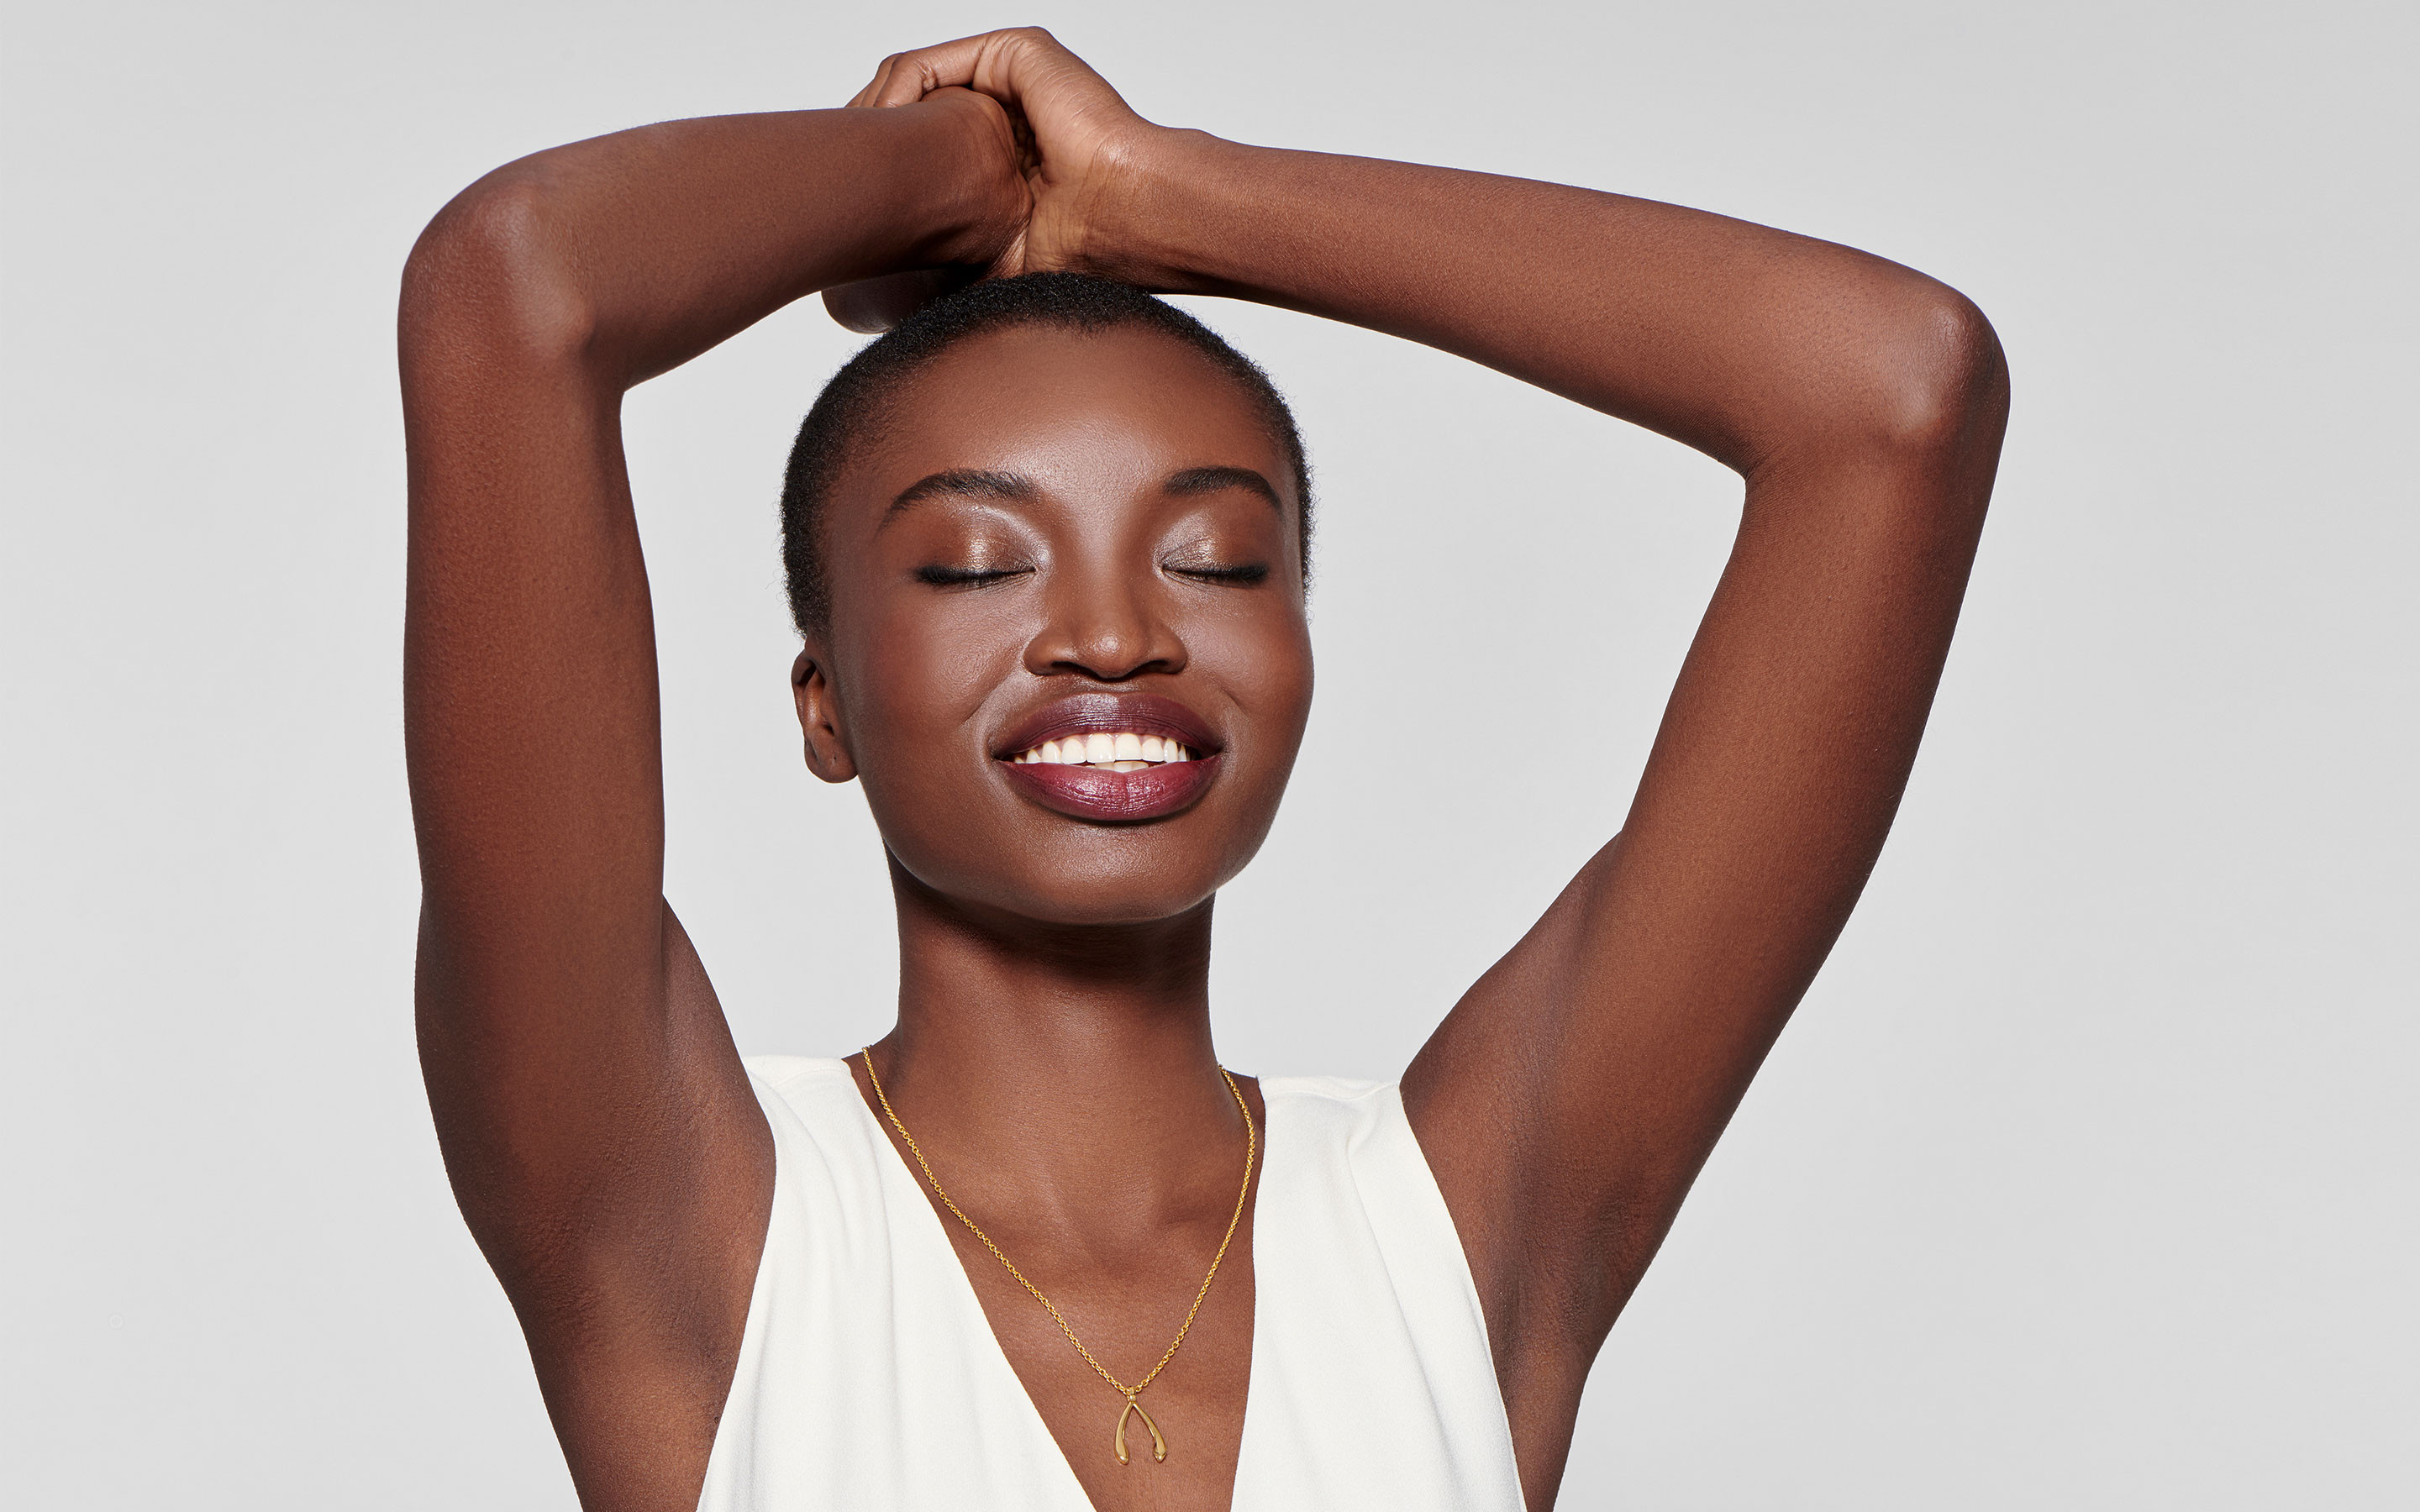 cheerful black woman modeling 22 karat gold necklace with wishbone pendant